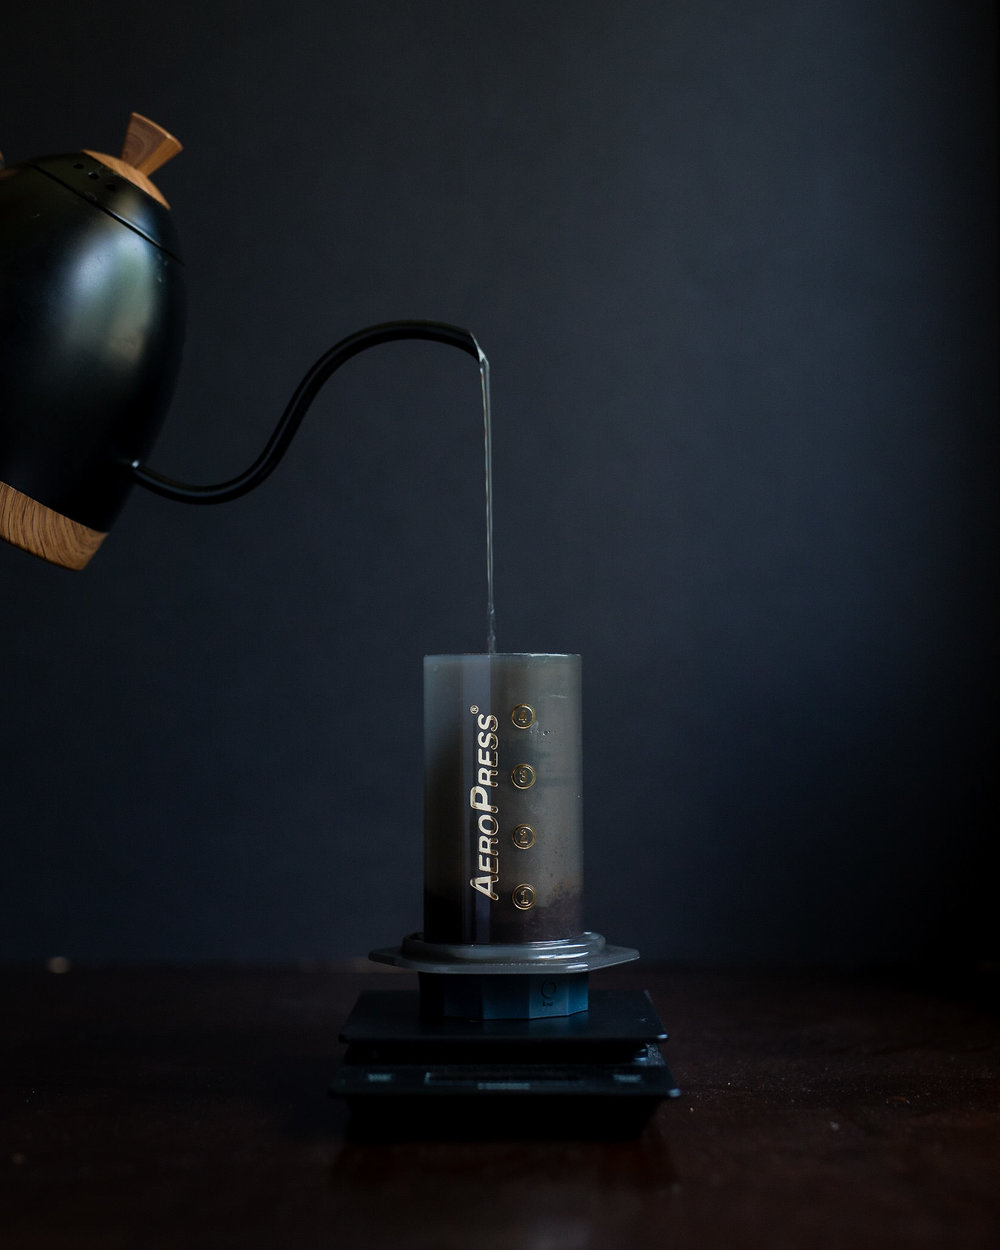 HandsomeWade-Aeropress-Brew-Guide-9.jpg